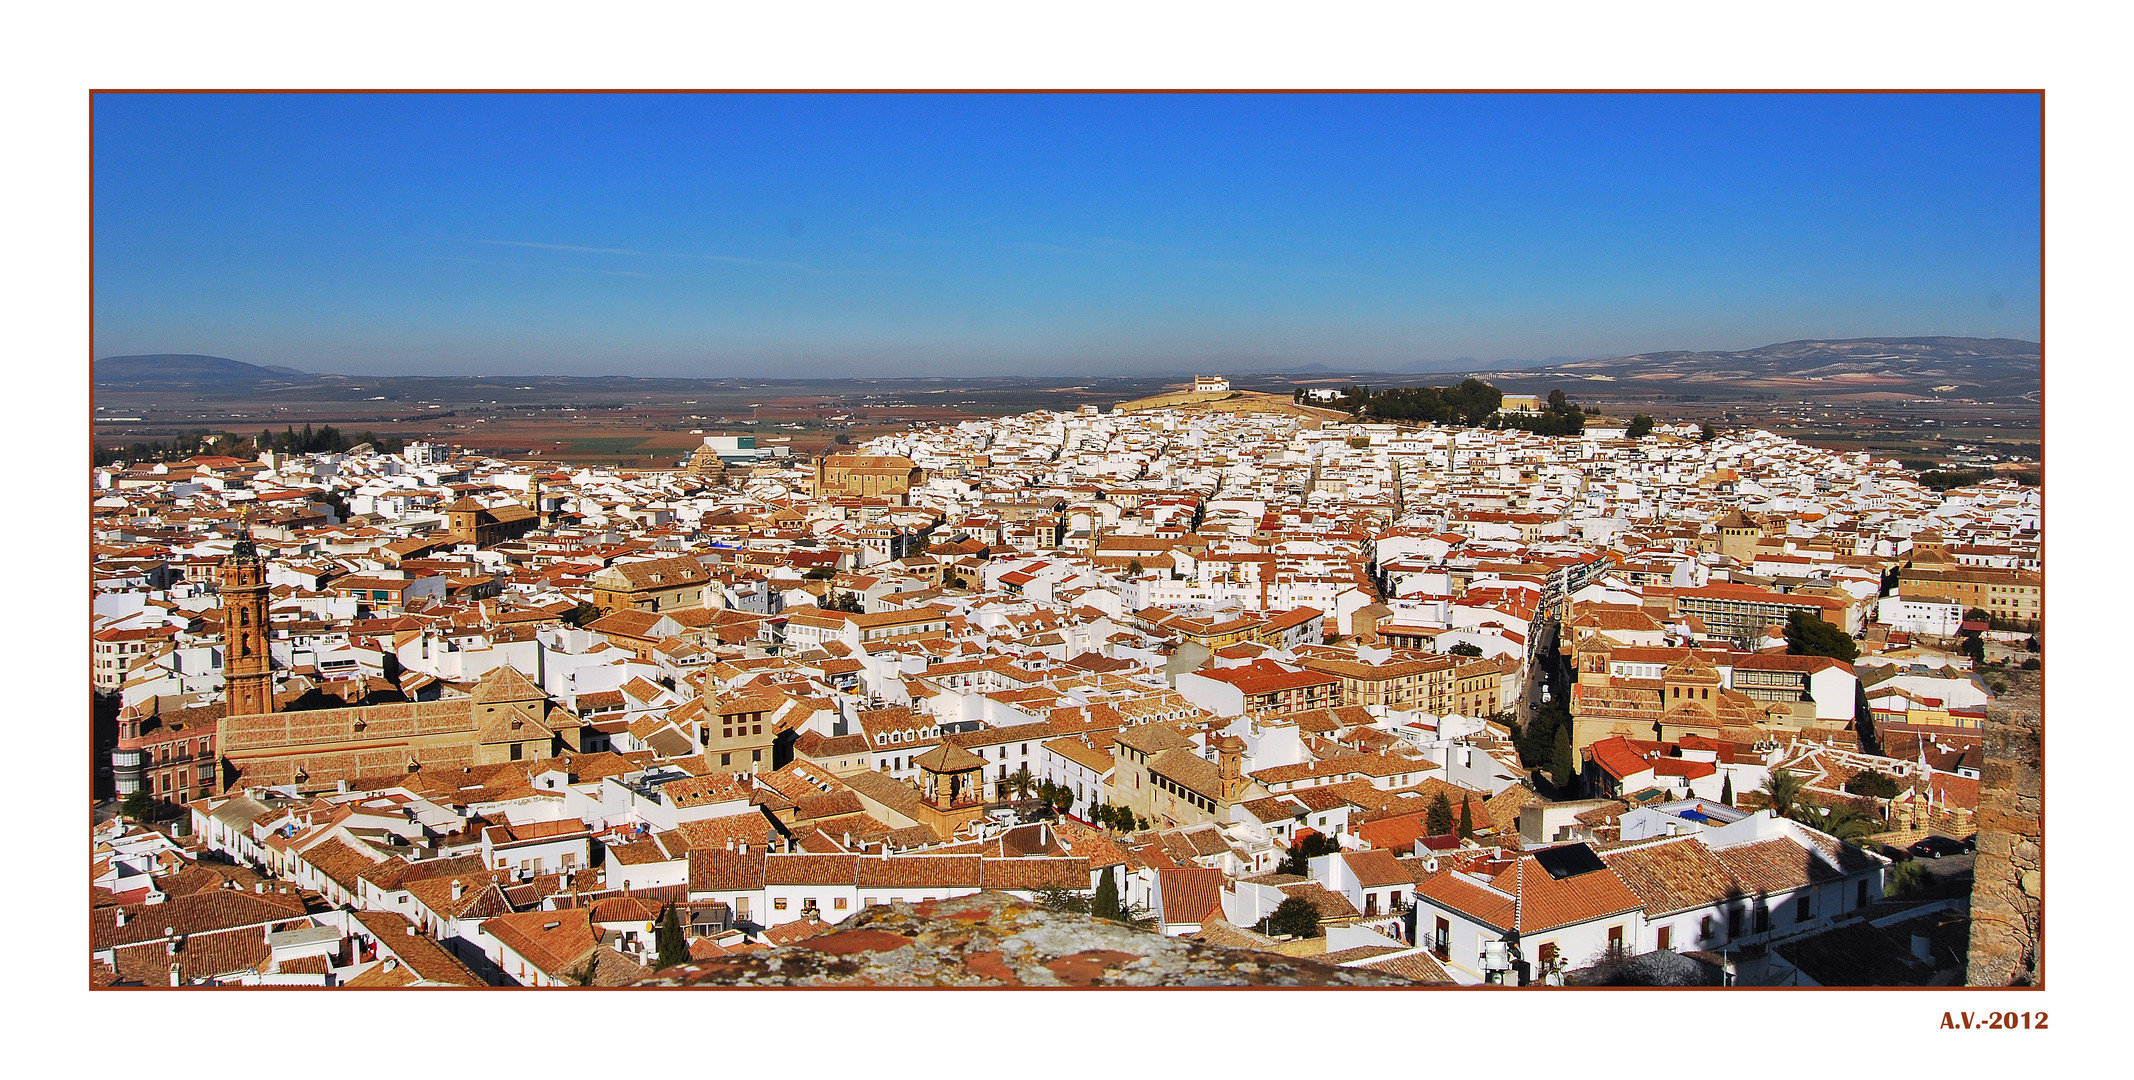 Bienmesabe antequerano 1. Panorámica